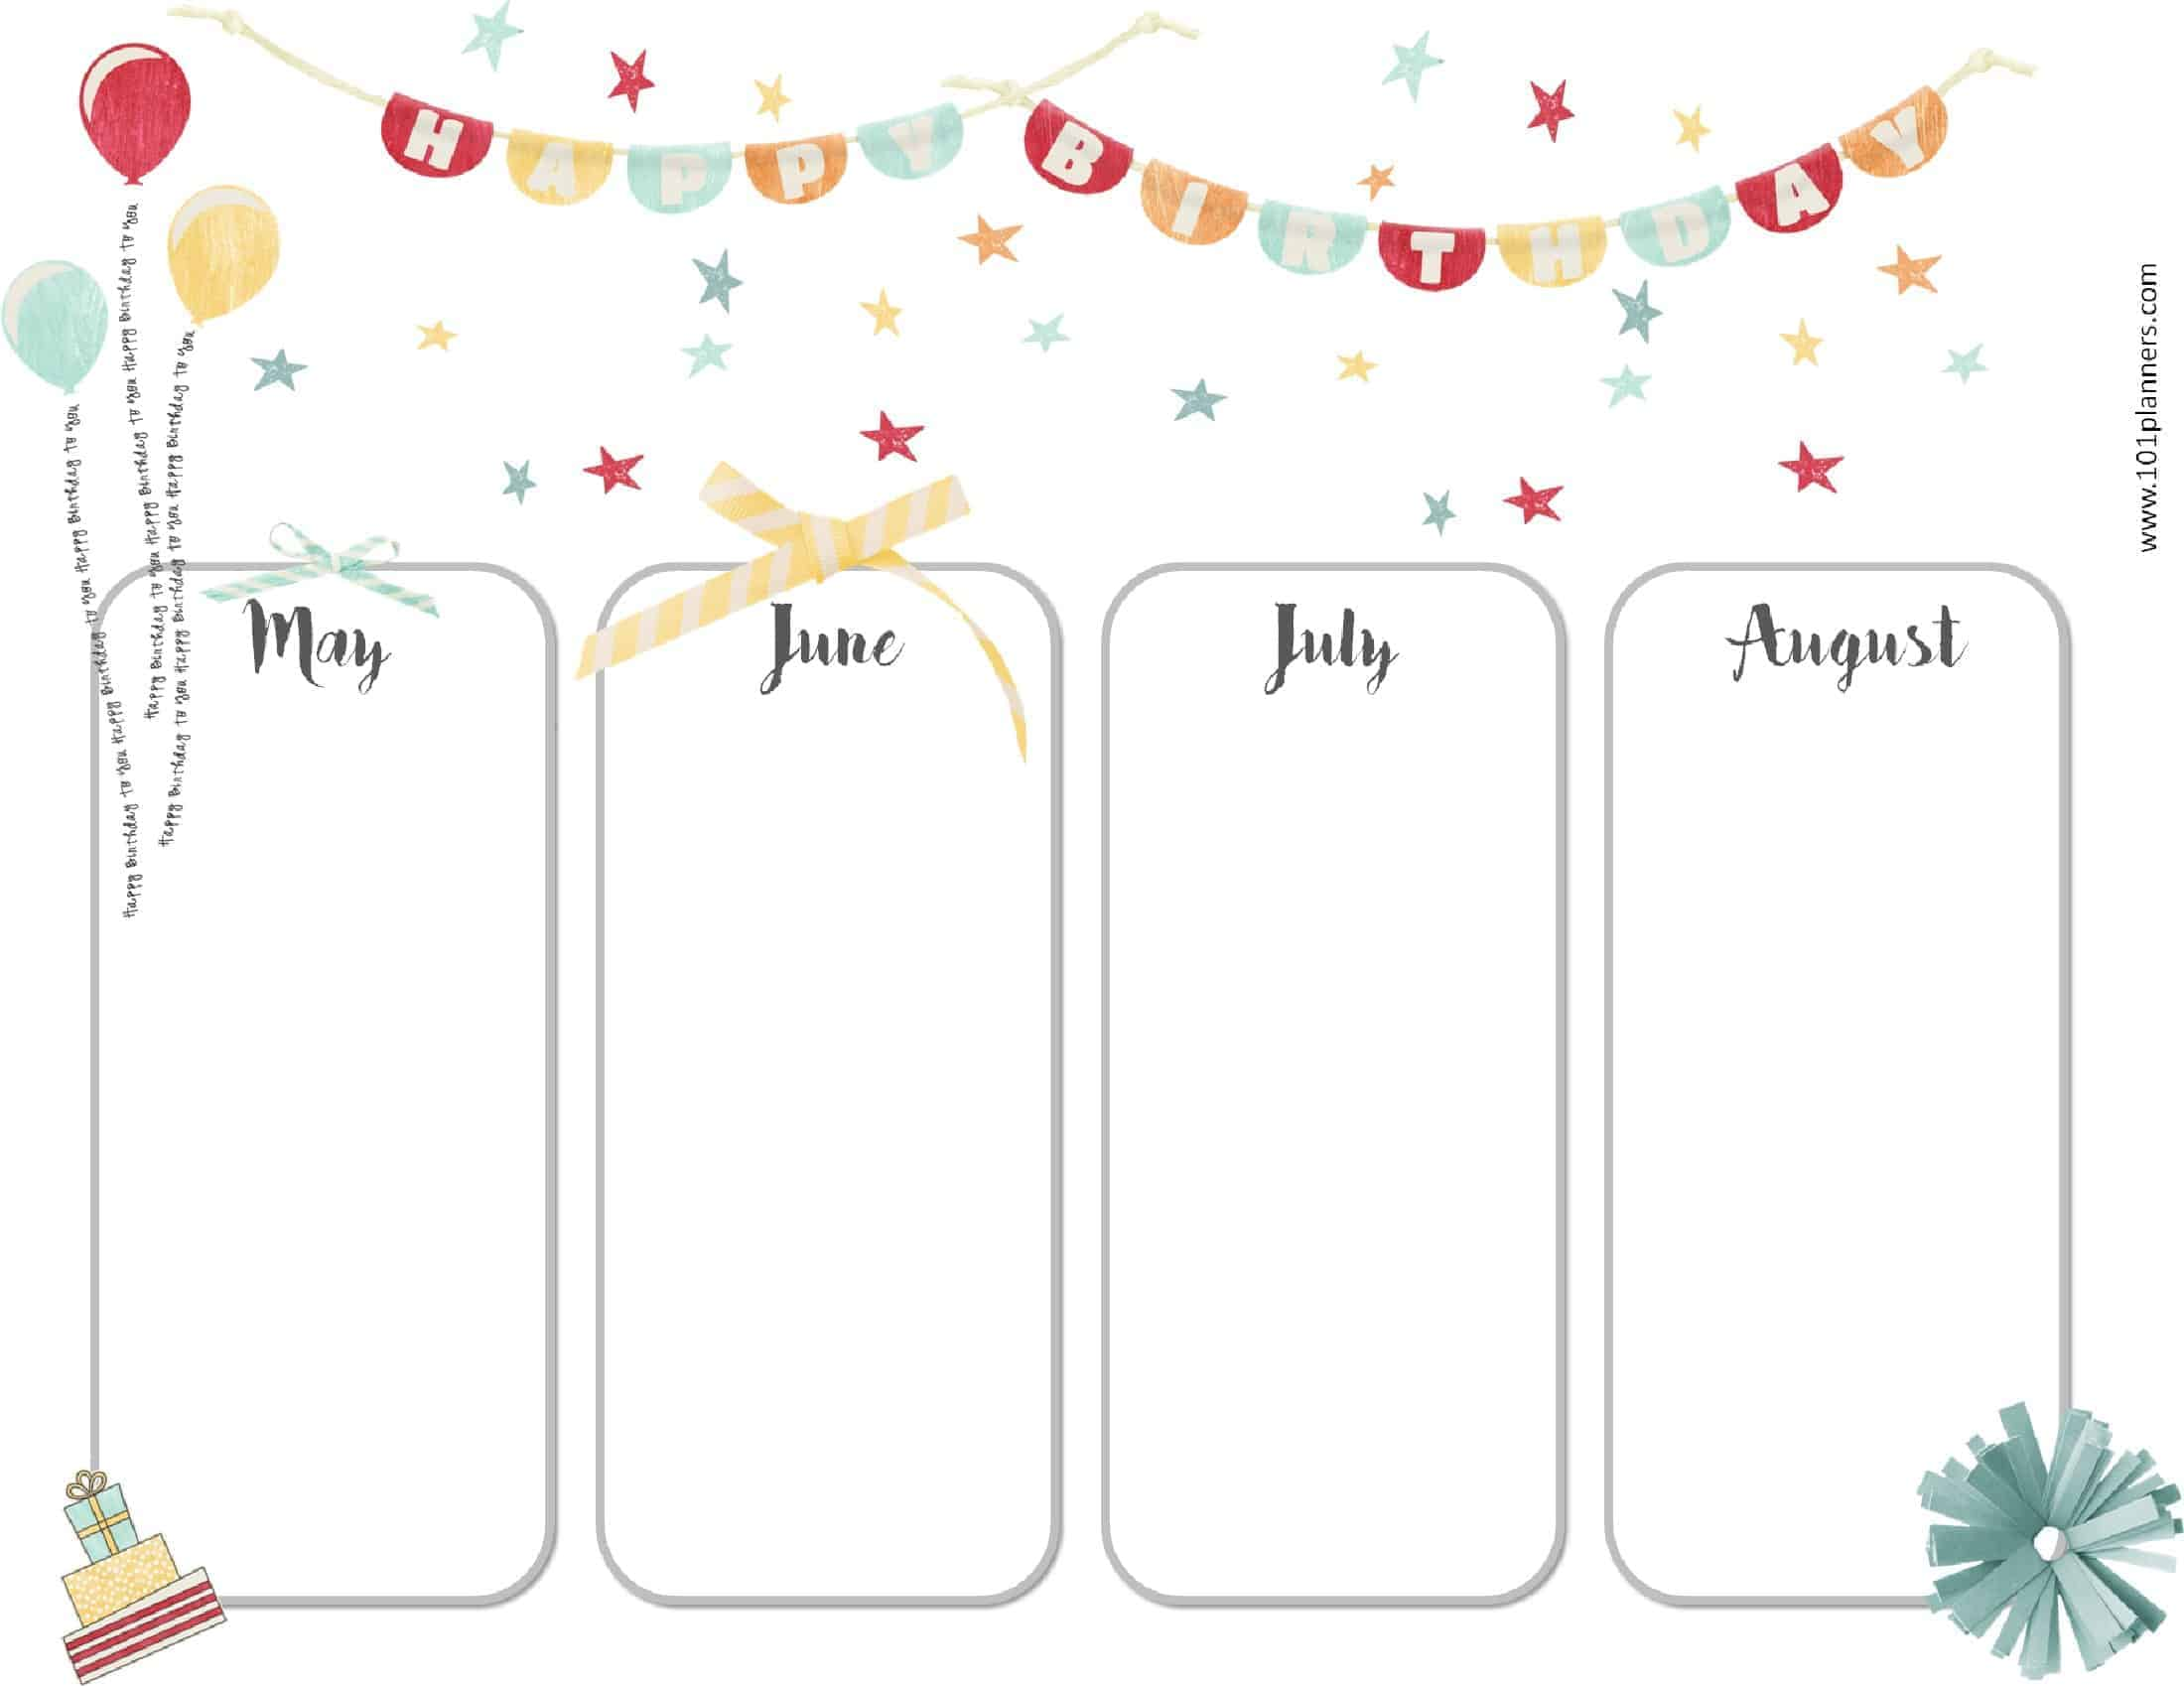 Free birthday calendar customize online print at home for Family birthday calendar template